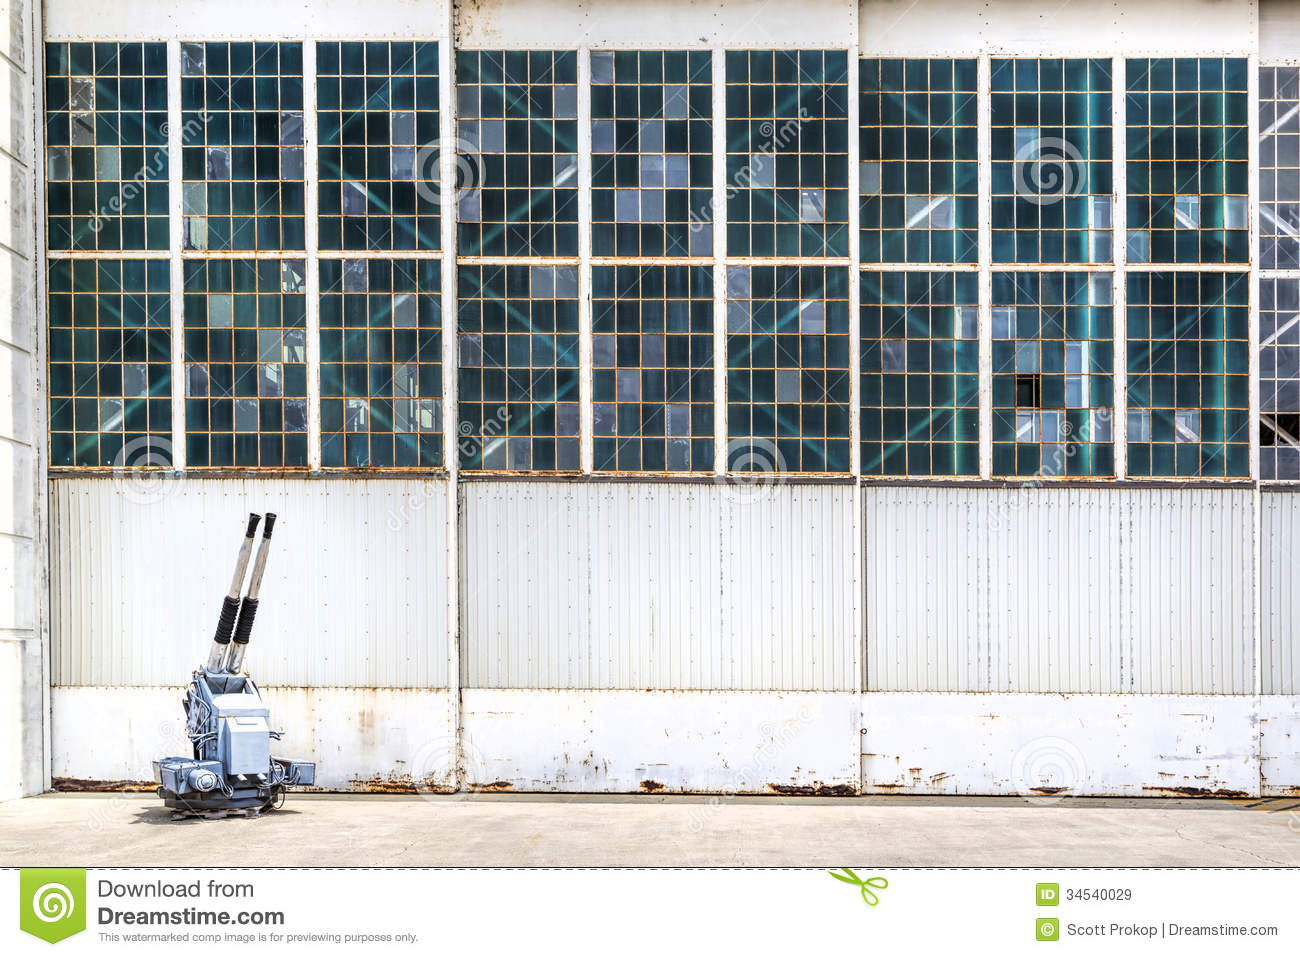 The Airport Hangar At With The Glass Damaged From A Gun Attack